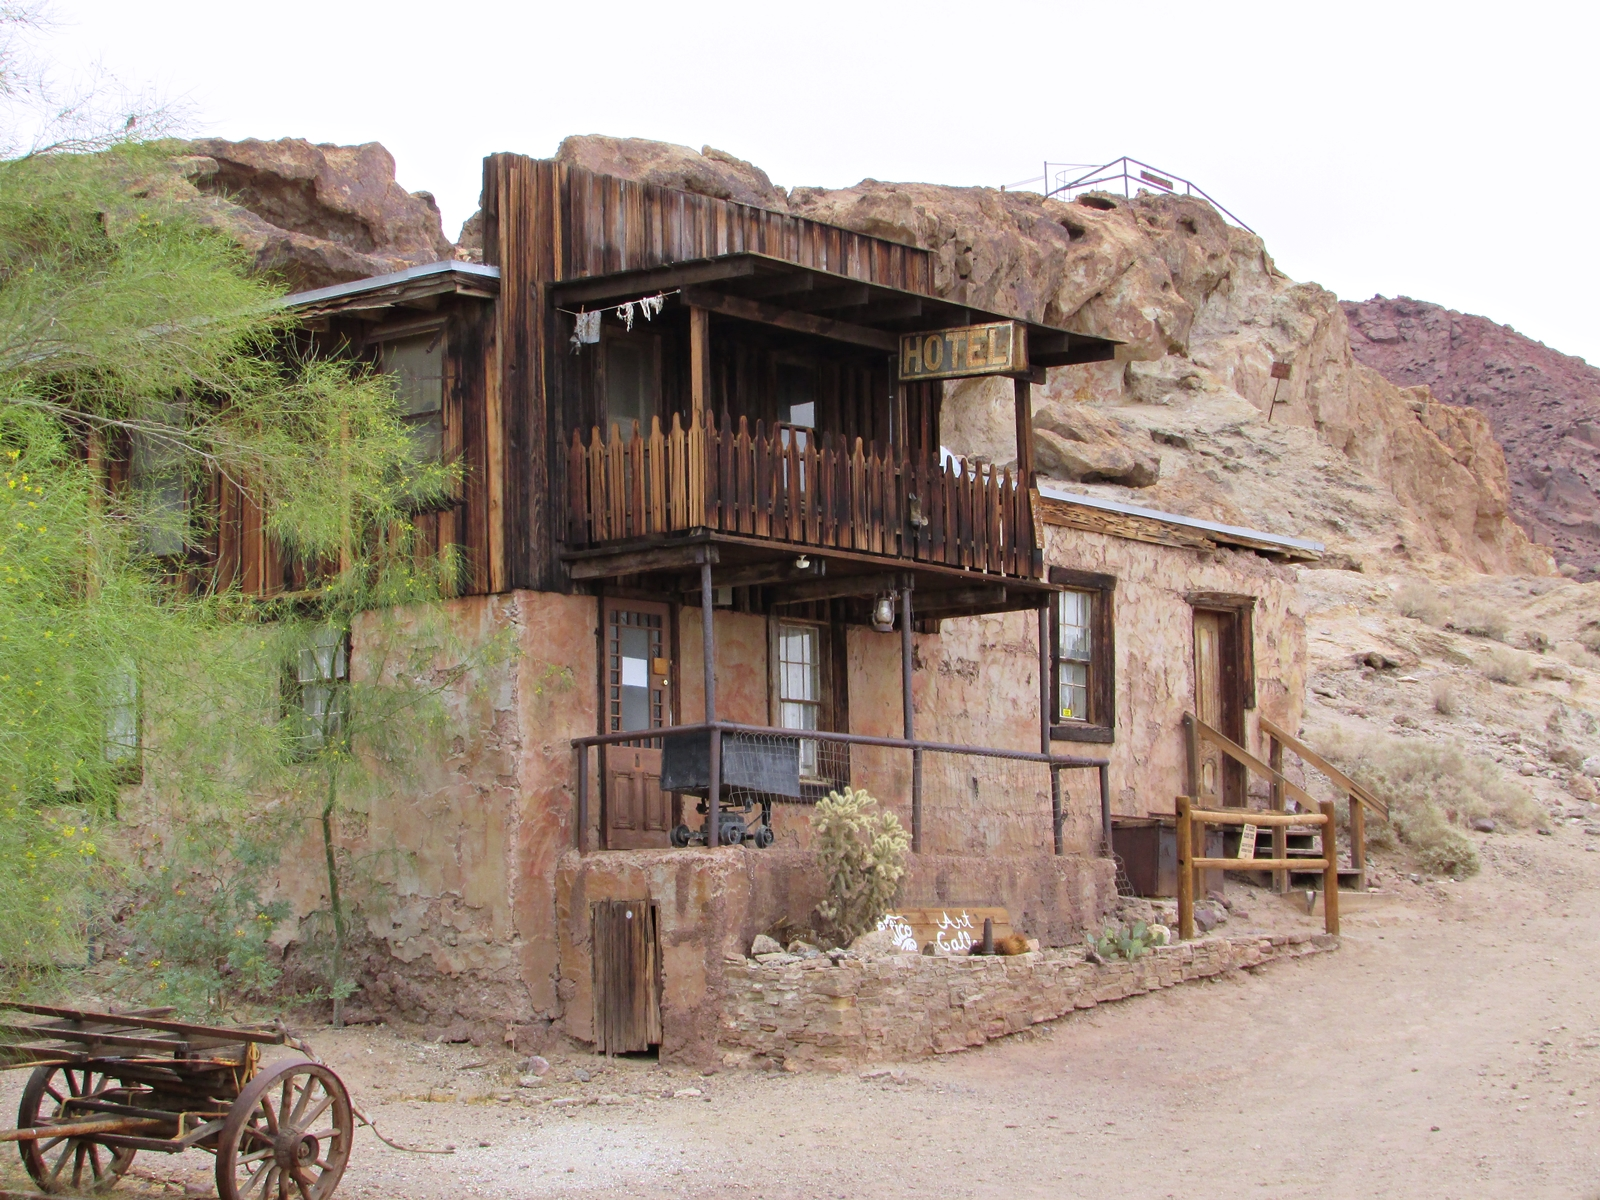 Calico Ghost town - usa rundreise - geisterstadt in der Mojave Wüste - Hotel - Roadtrip - Fashionladyloves by Tamara Wagner Travelblog